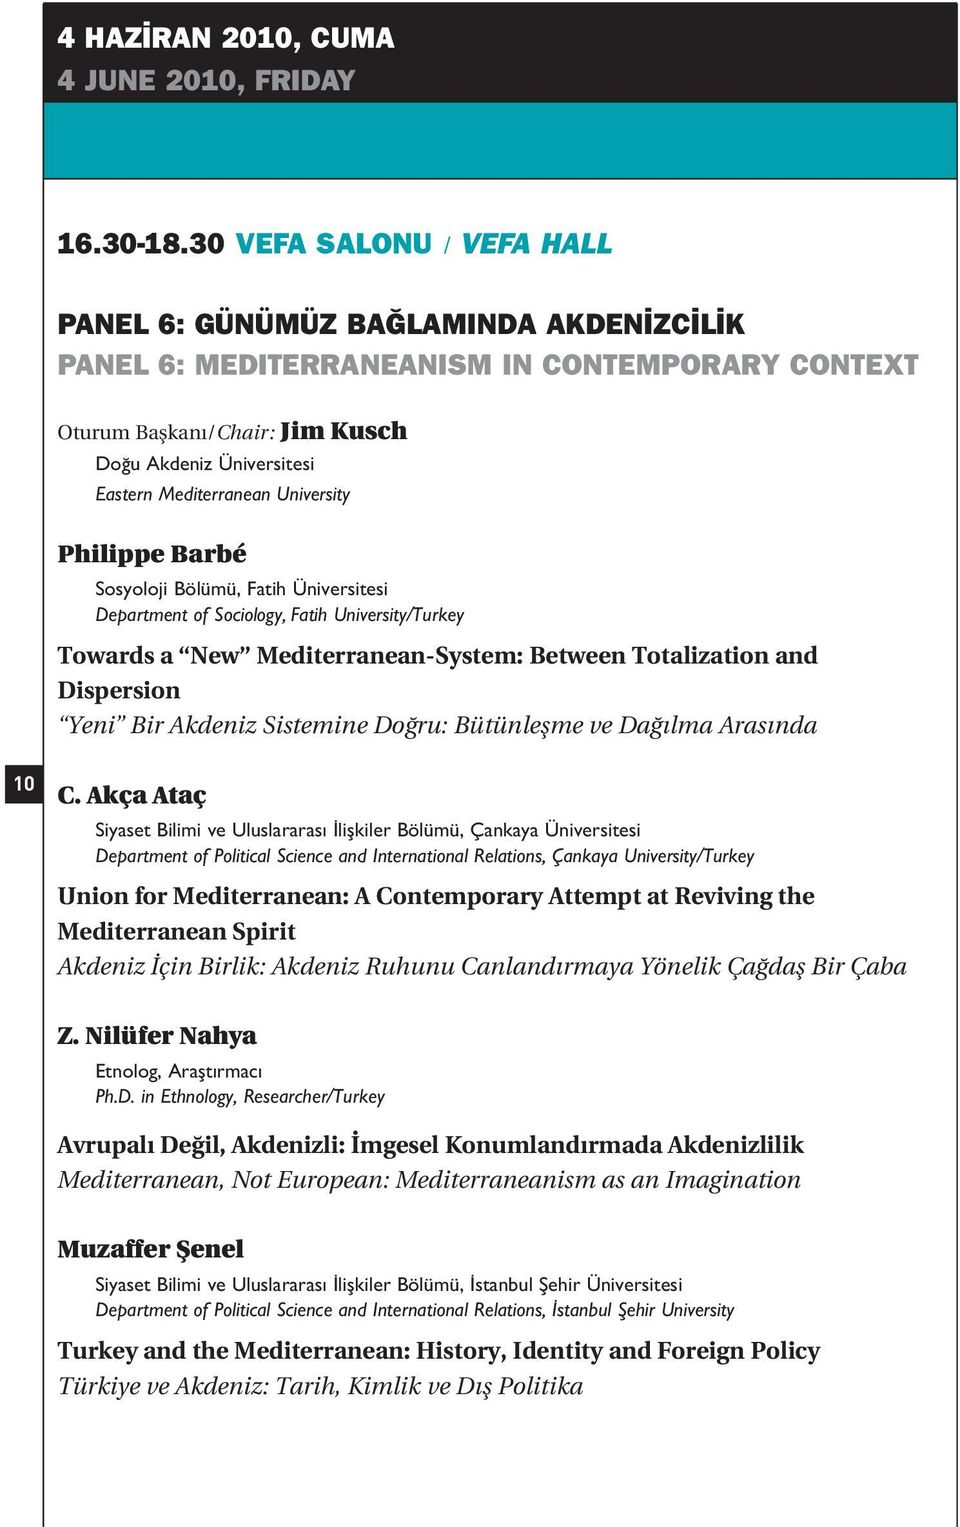 University Philippe Barbé Sosyoloji Bölümü, Fatih Üniversitesi Department of Sociology, Fatih University/Turkey Towards a New Mediterranean-System: Between Totalization and Dispersion Yeni Bir